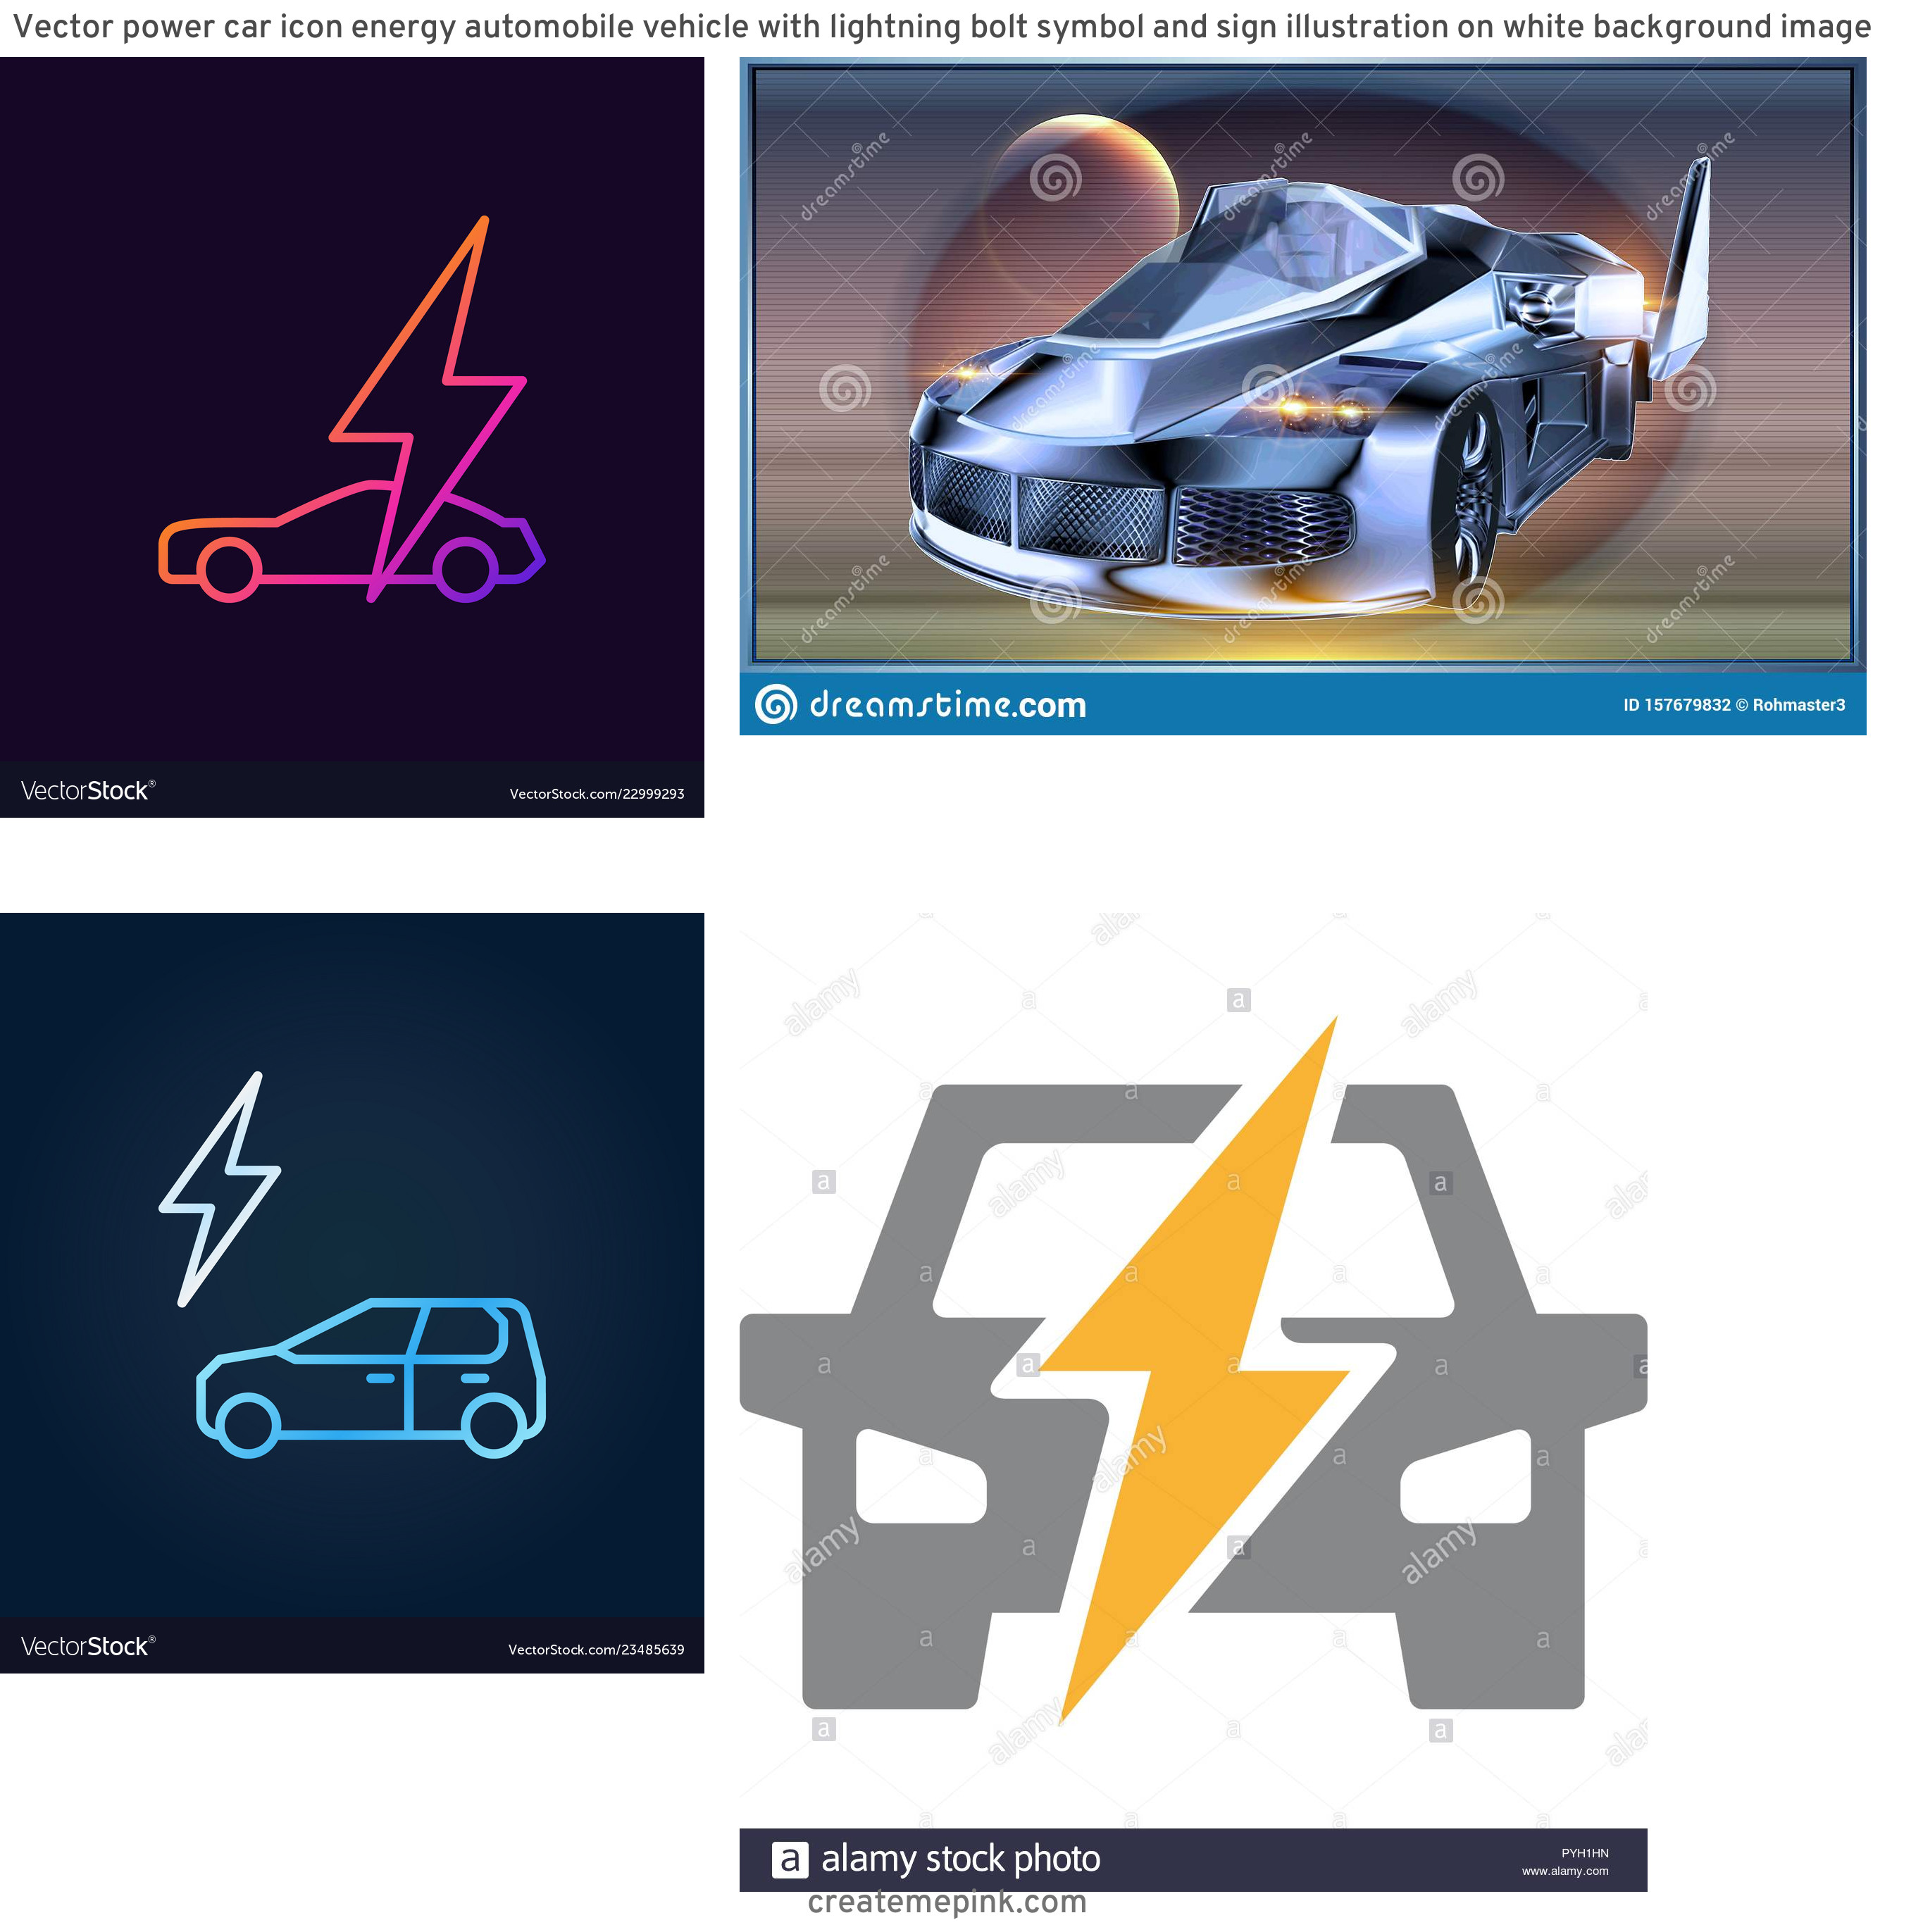 Lightning Car Graphics Vector: Vector Power Car Icon Energy Automobile Vehicle With Lightning Bolt Symbol And Sign Illustration On White Background Image